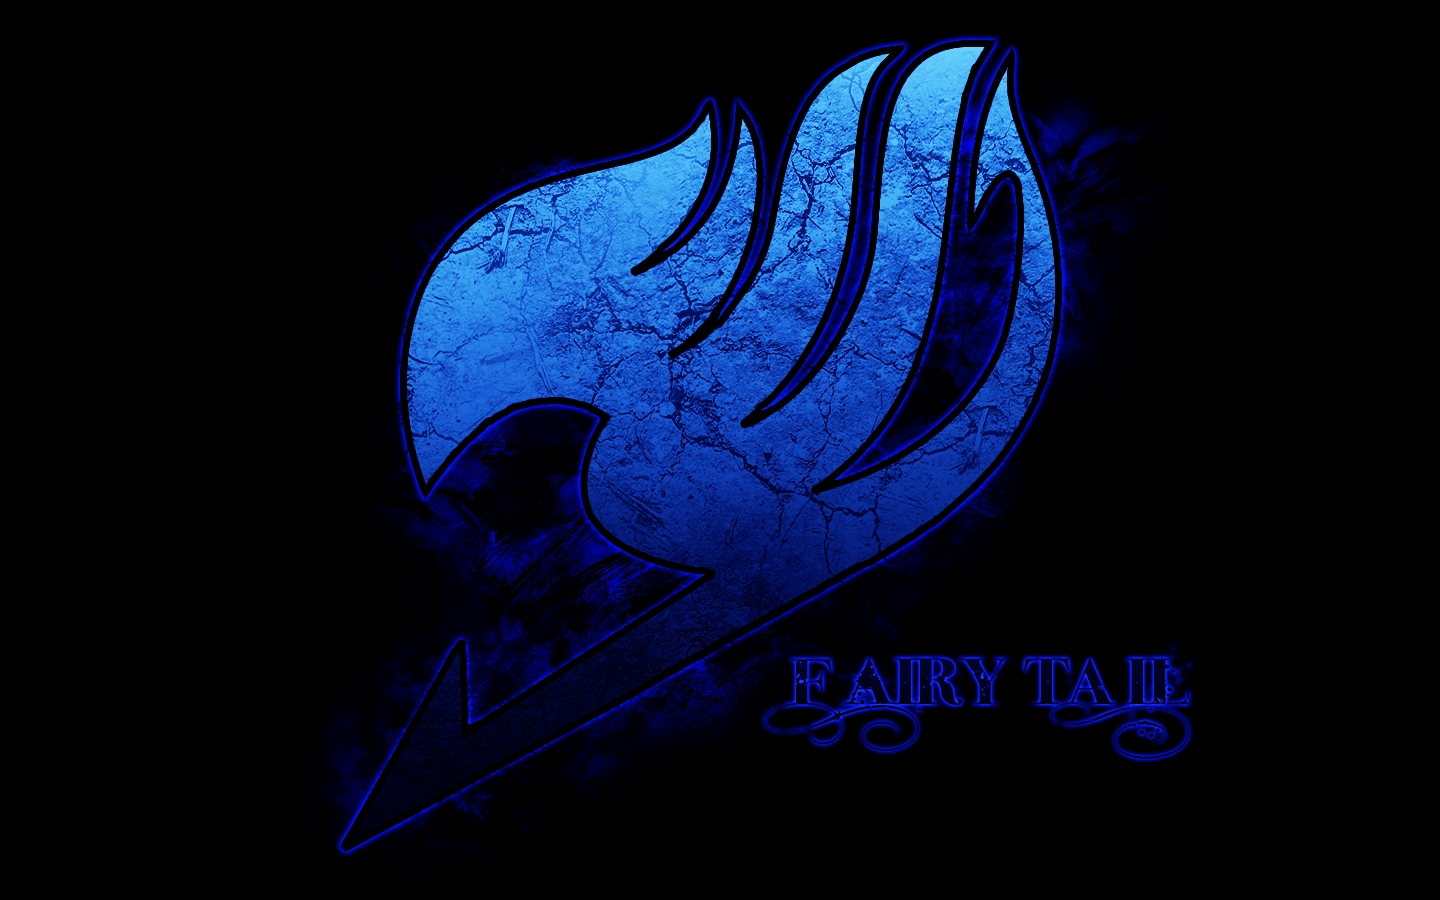 http://2.bp.blogspot.com/-u2382ZjM7dg/UCKFw9zkwTI/AAAAAAAAAO0/G8diSJOOWd4/s1600/Fairy_the_number_one_guild_Wallpaper_1440x900_wallpaperhere.jpg